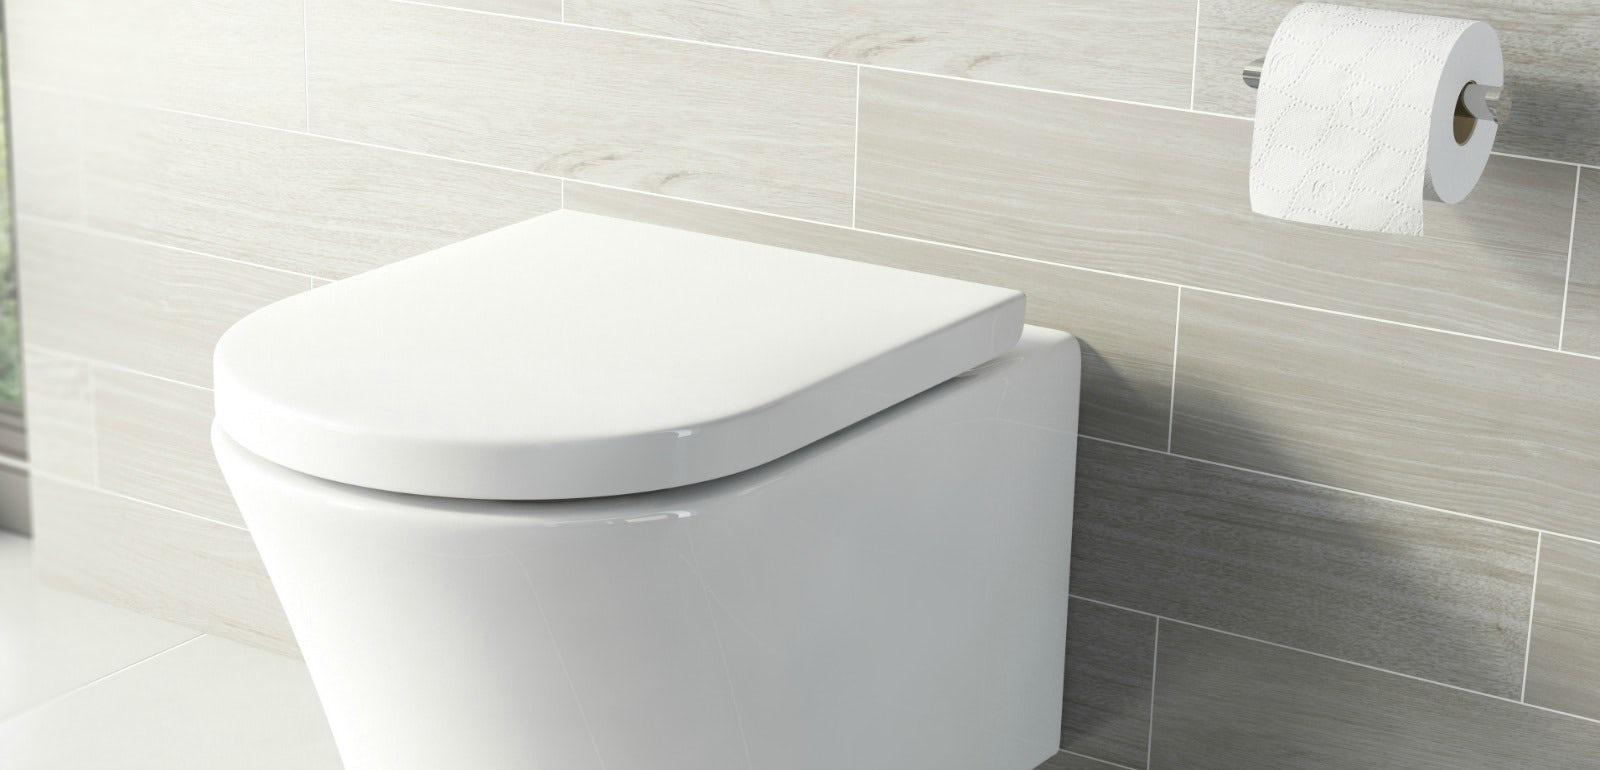 5 Reasons To Buy A Wall Hung Toilet Victoriaplum Com